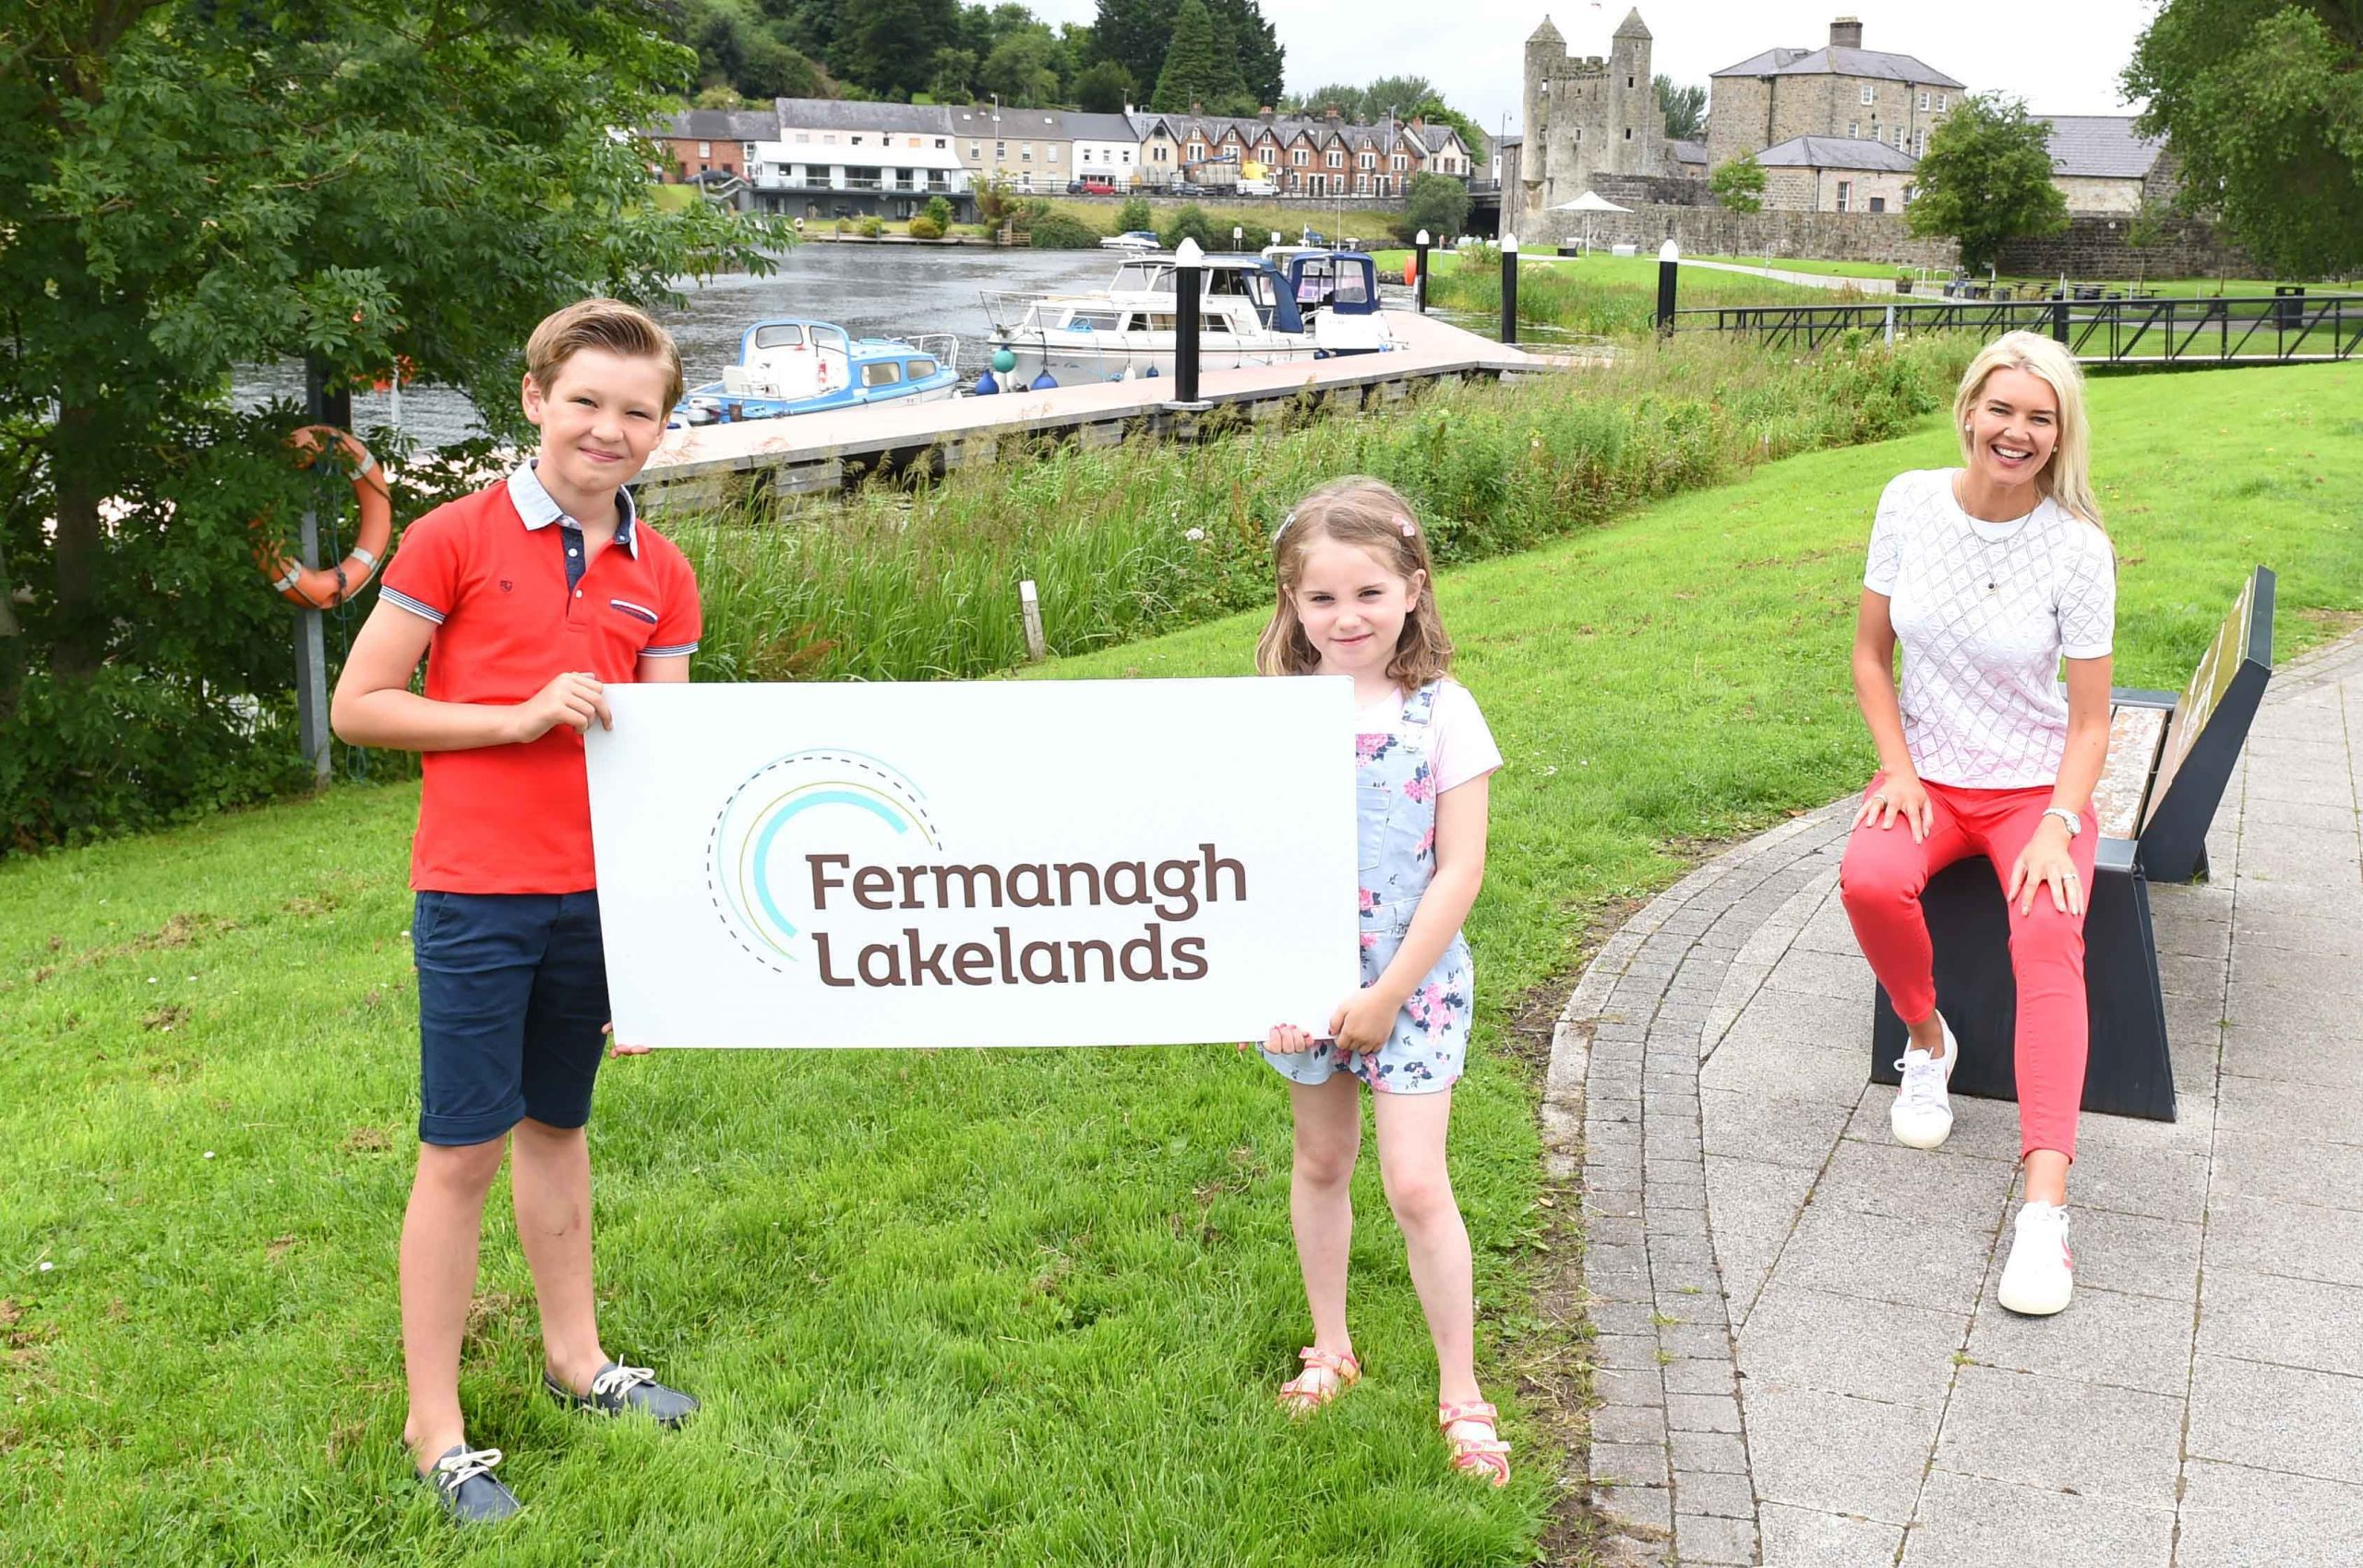 FERMANAGH FUN: As Covid-19 restrictions ease, more and more people are looking forward to a much-needed break and Fermanagh Lakeland Tourism has reported a significant increase in staycation enquiries in the county over the last four weeks. It's new marketing initiative Ready For You aims to encourage holiday makers to book a staycation and enjoy everything that the Lakeland County has to offer. Visit www.fermanaghlakelands.com to plan your staycation today! Pictured as they get ready for a fun filled break in Co. Fermanagh are (L-R) Wilson Grey, Eabha Smyth and Judith Grey.